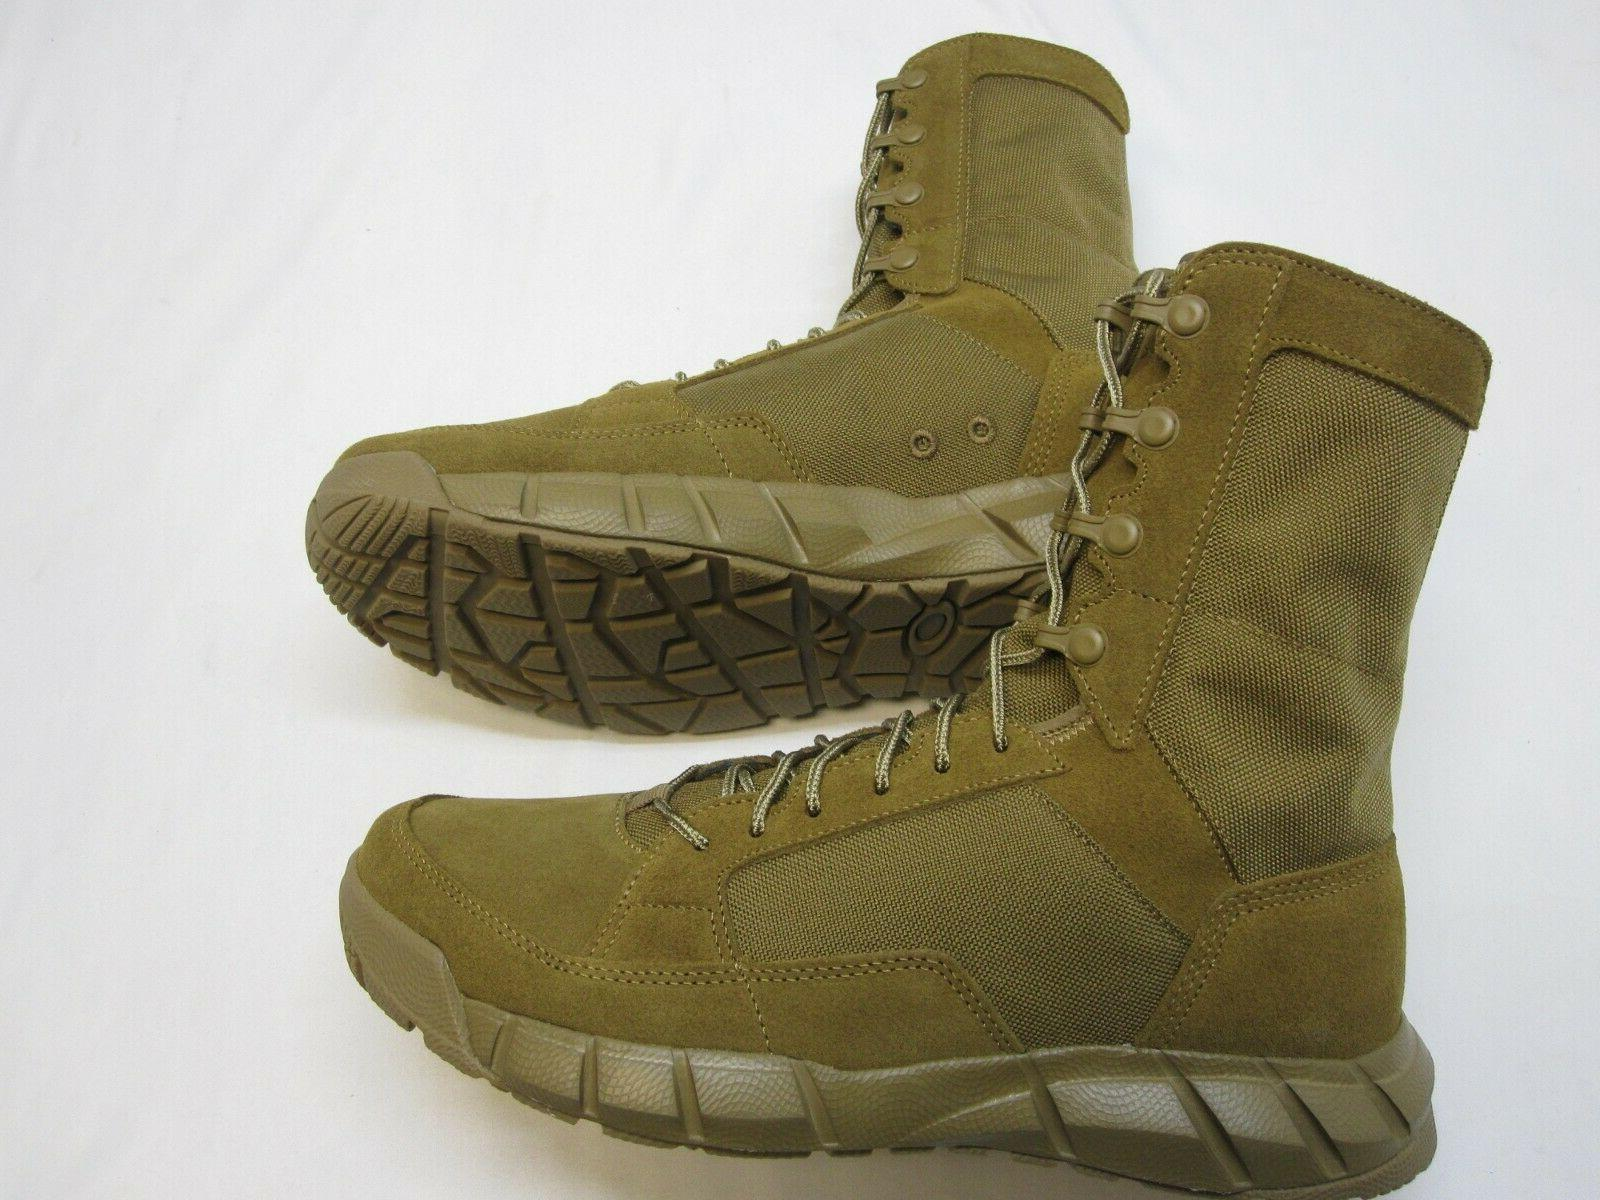 OAKLEY ARMY MILITARY COMBAT BOOTS COYOTE BOOT